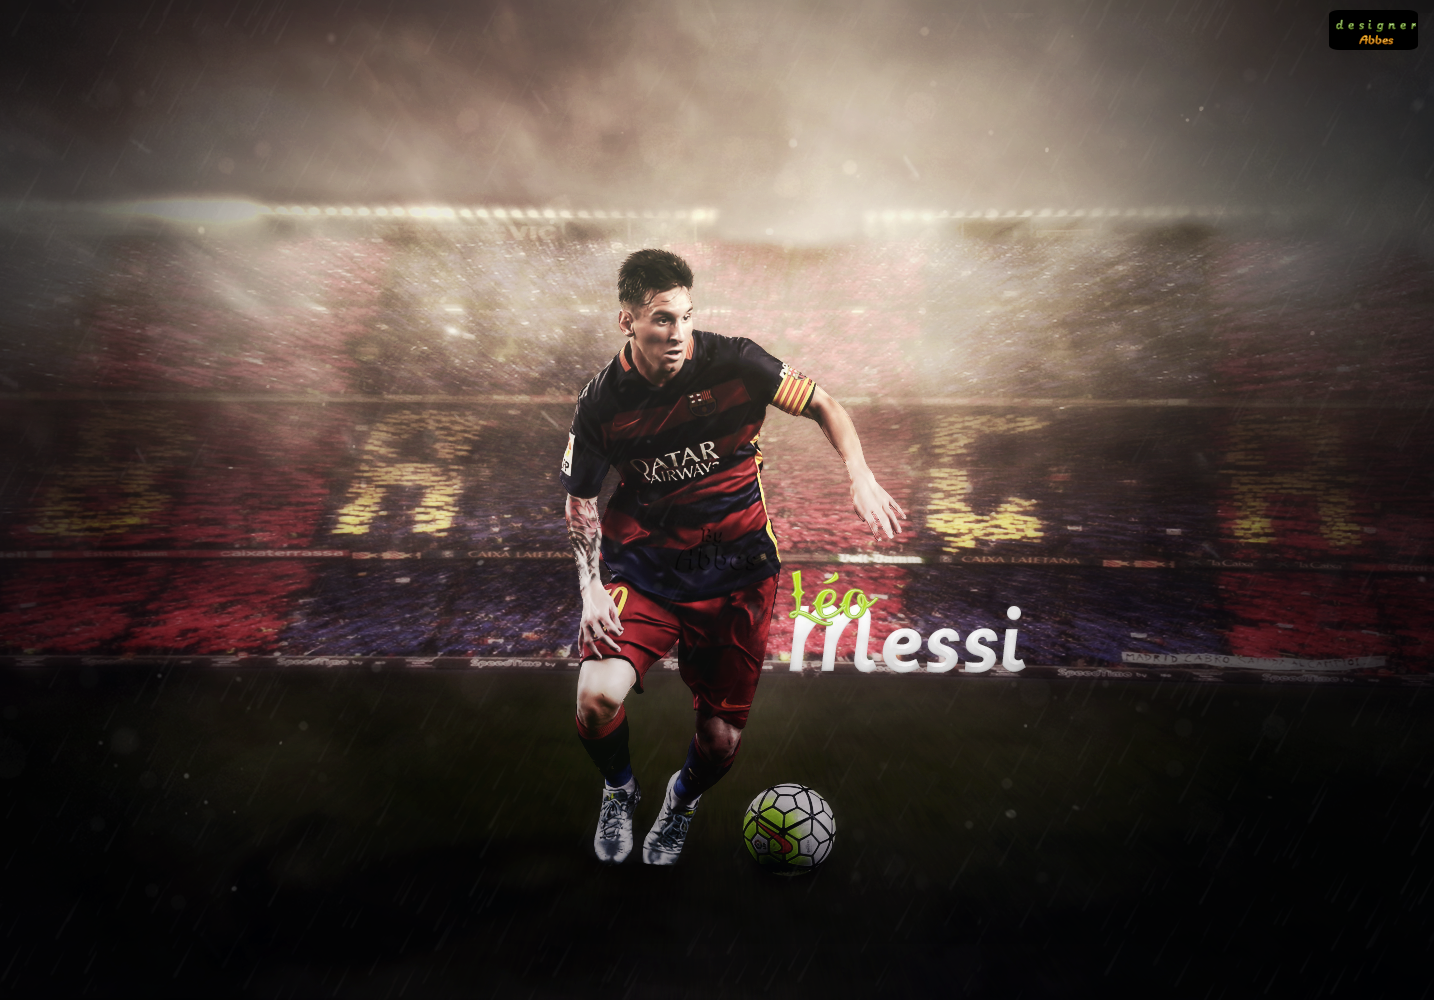 Lionel Messi Wallpaper 2016